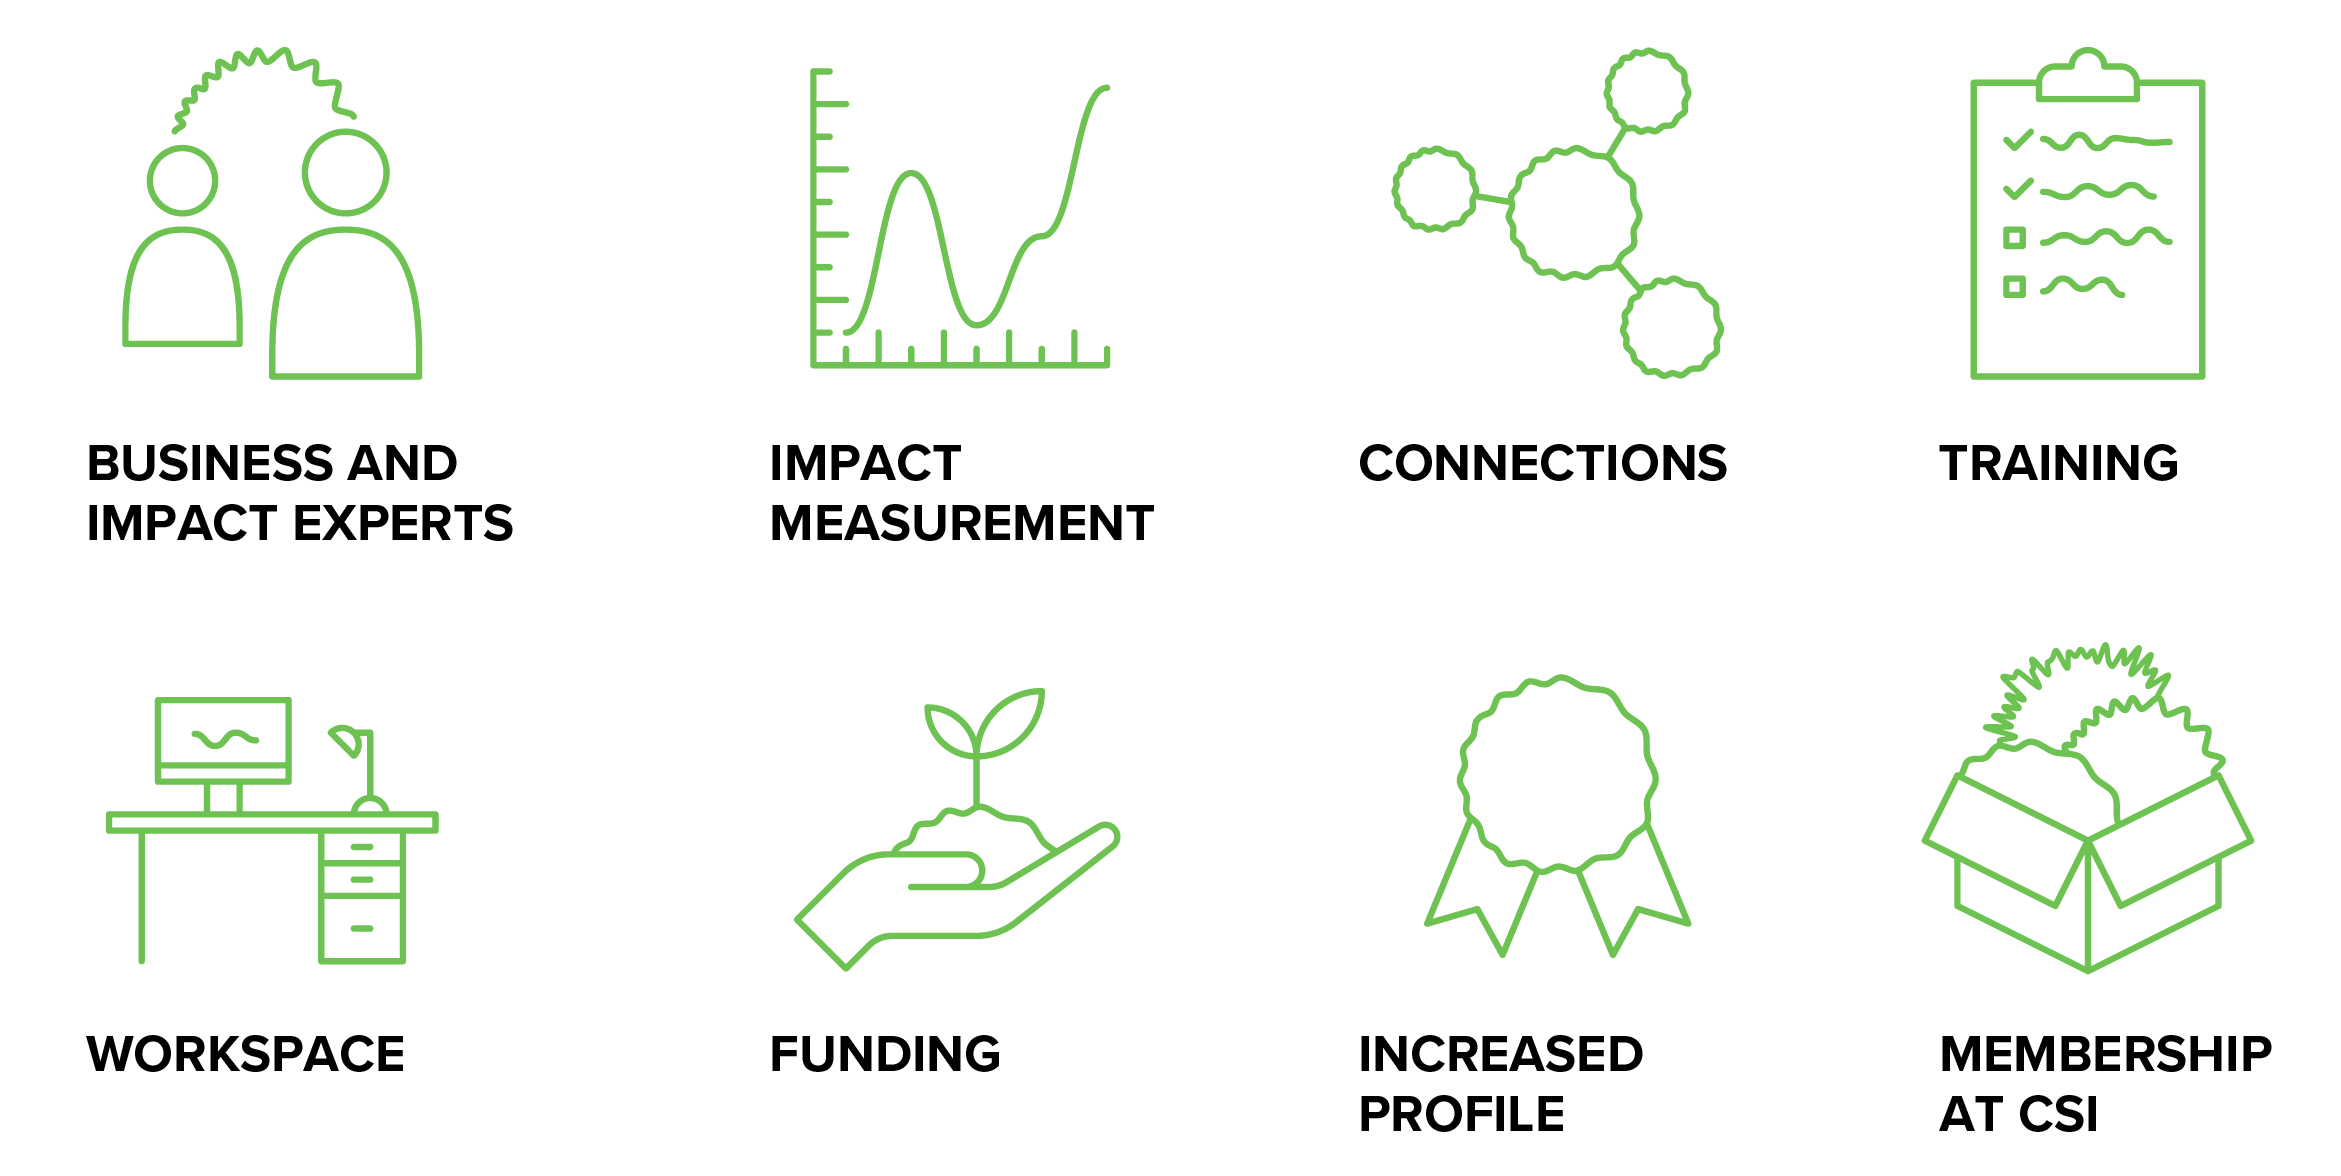 Climate Ventures program support icons for business and impact experts, impact measurement, connections, training, workspace, funding, increased profile, and membership at CSI